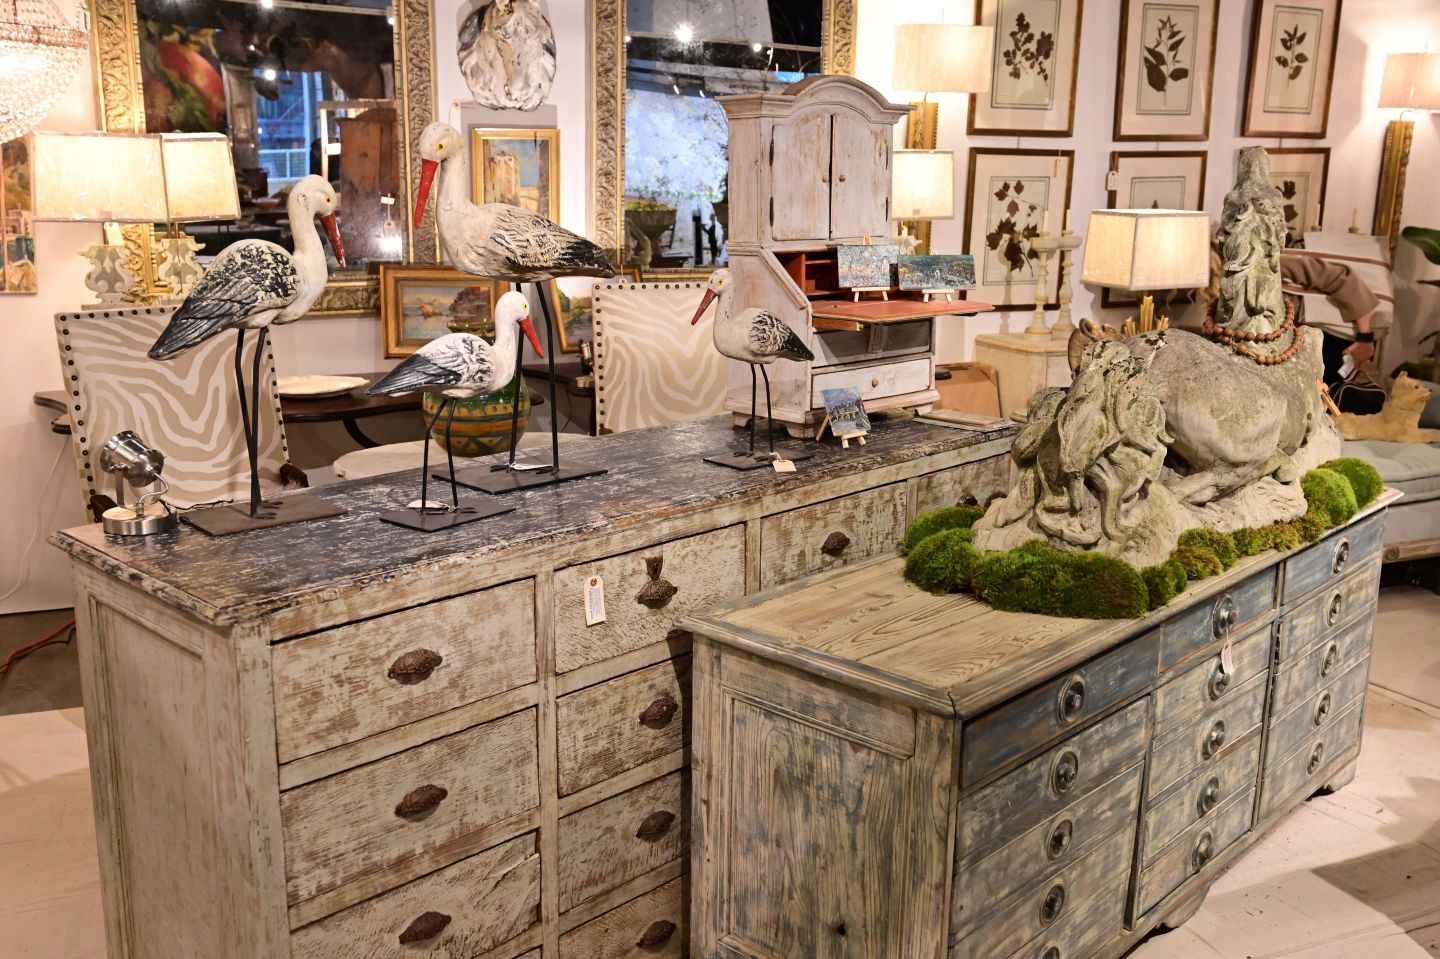 PeytonHoge-photos-055-1440x959 Southern Exposure with Black Southern Belle: Nashville Antiques & Garden Show